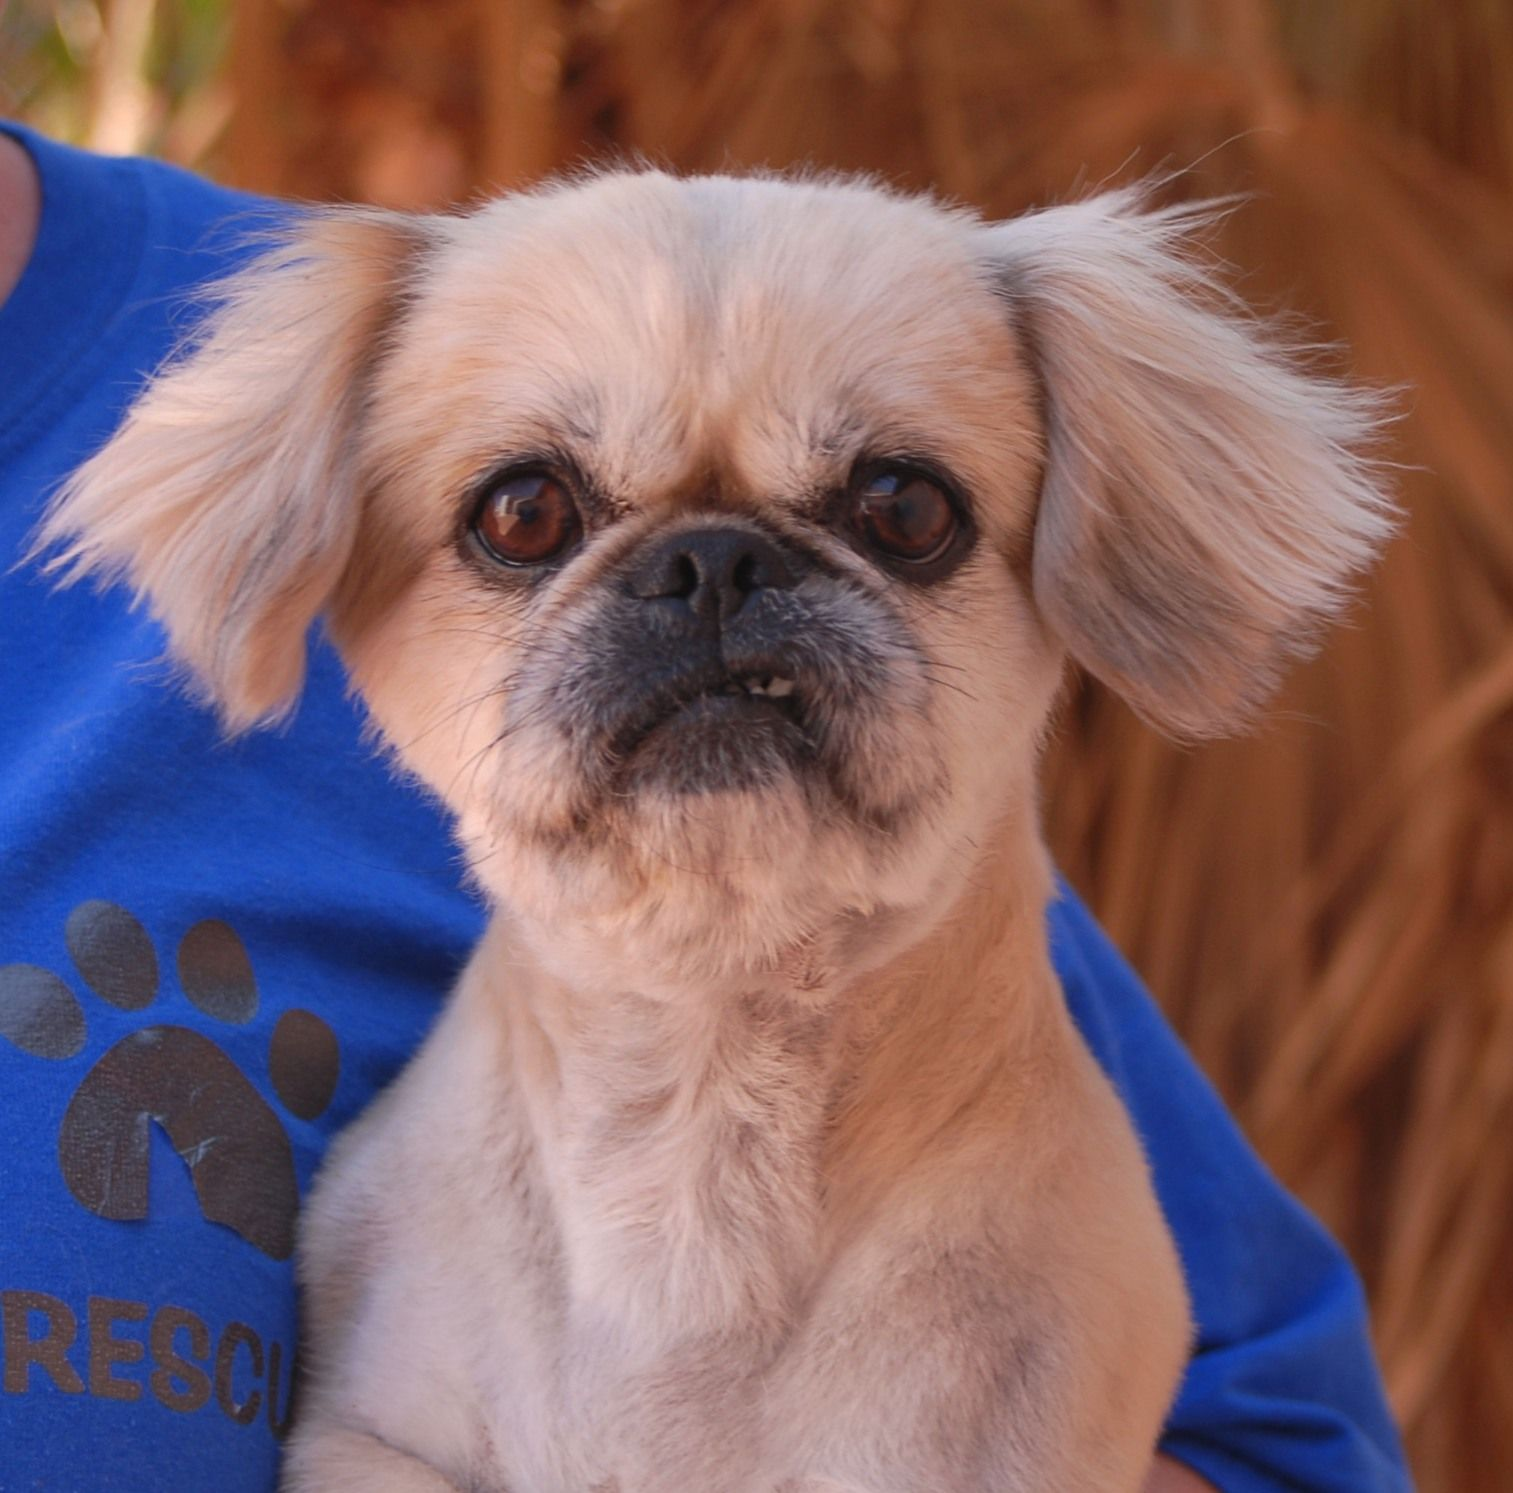 Sherry Is A Good Natured Pekingese Currently Shaved Down Debuting For Adoption Today At Nevada Spca Www Nevadaspca Dog Adoption Pet Adoption Pekingese Dogs